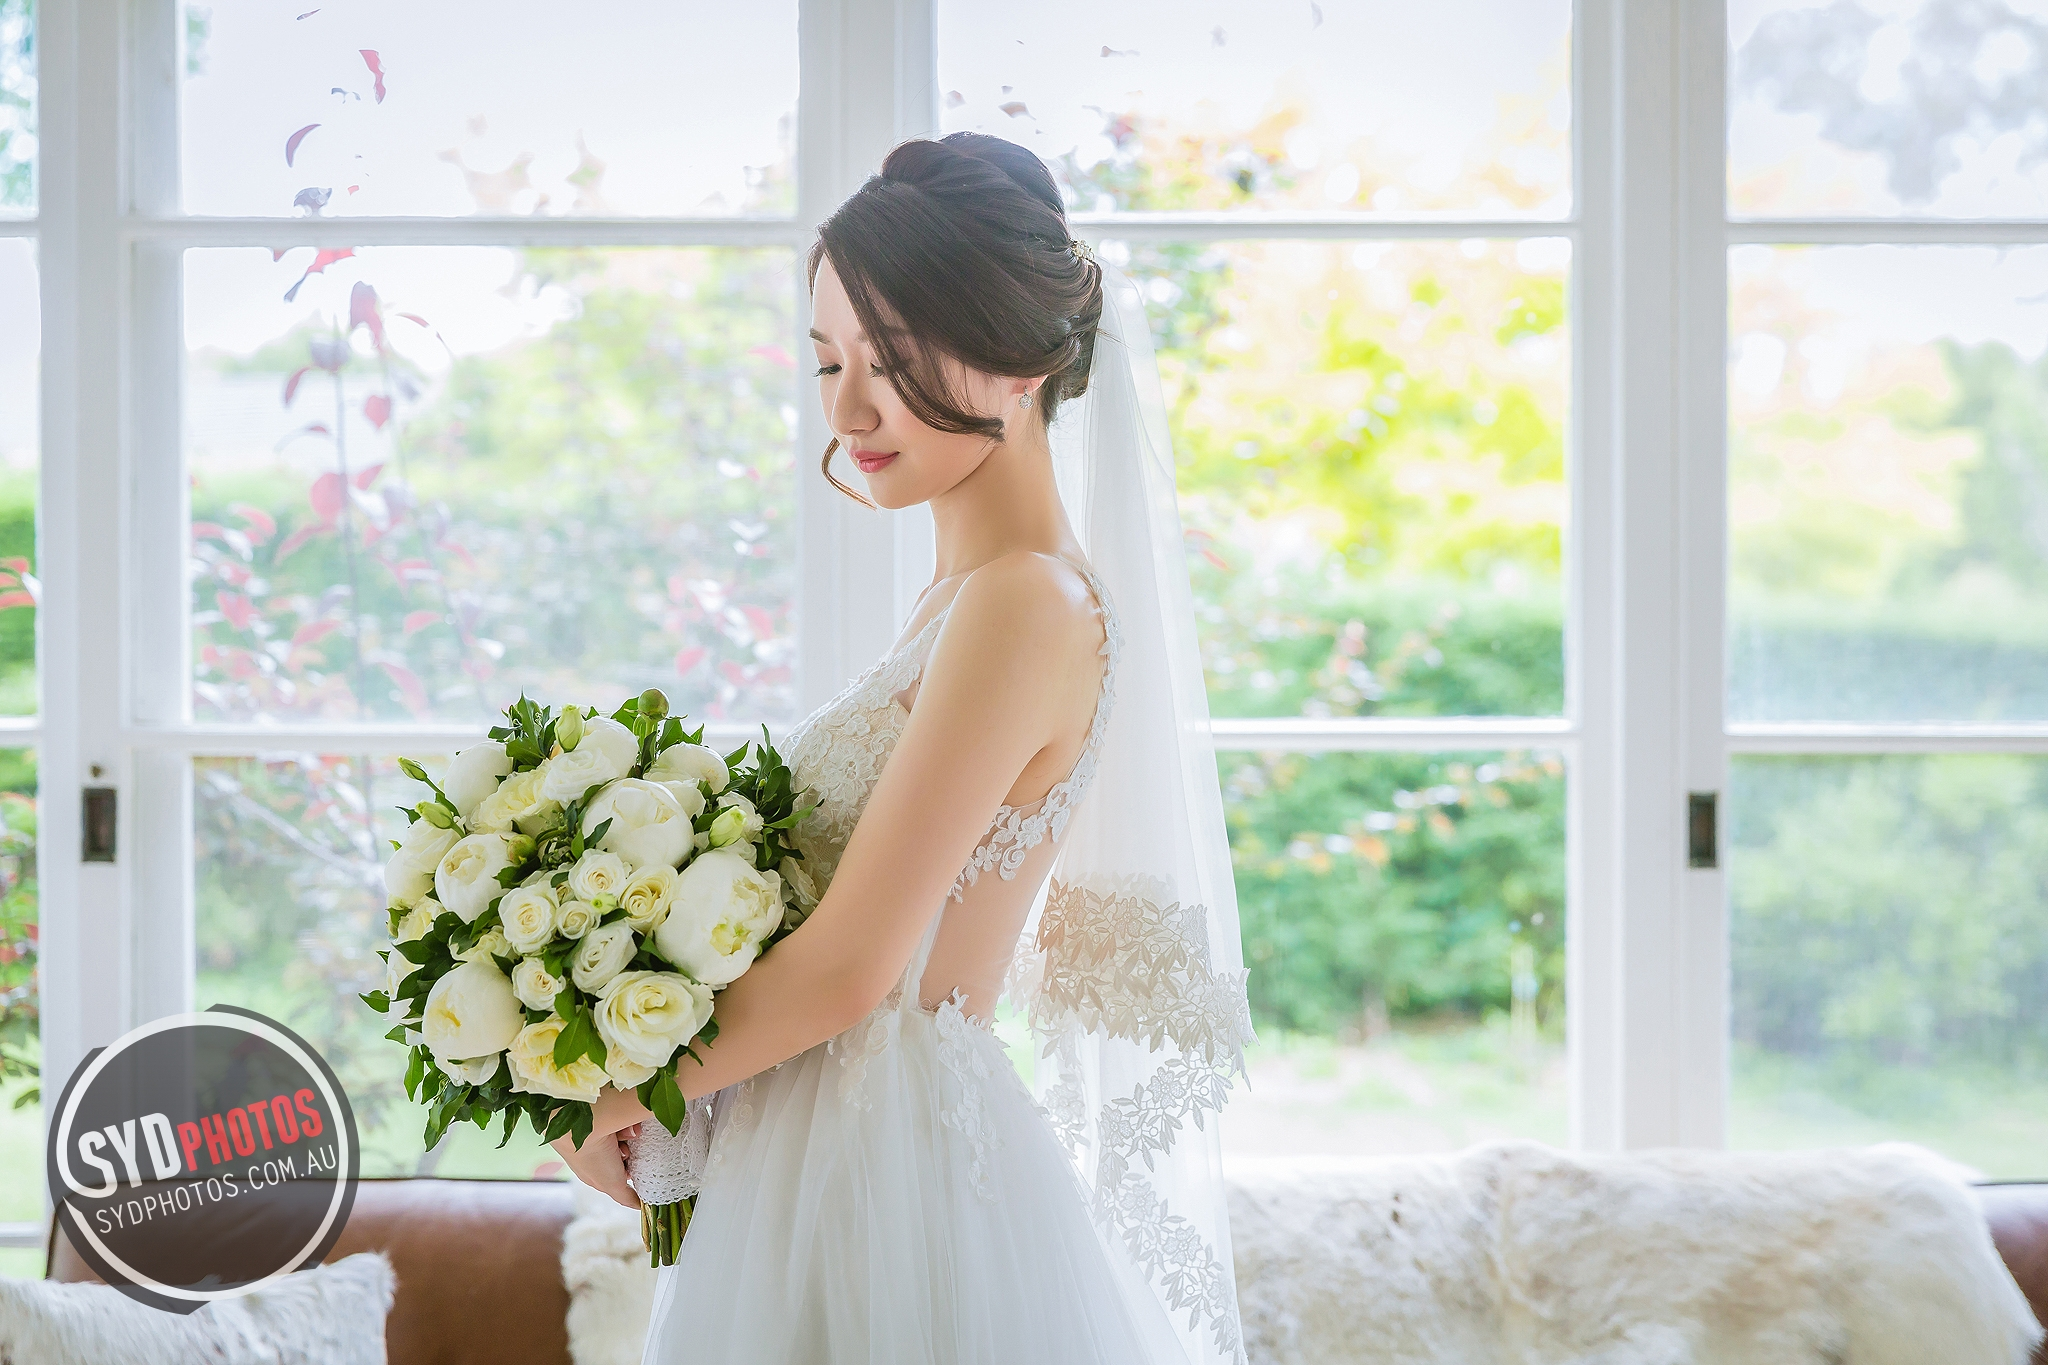 ID-87323-Jennifer Lee-Wedding-悉尼婚礼摄影